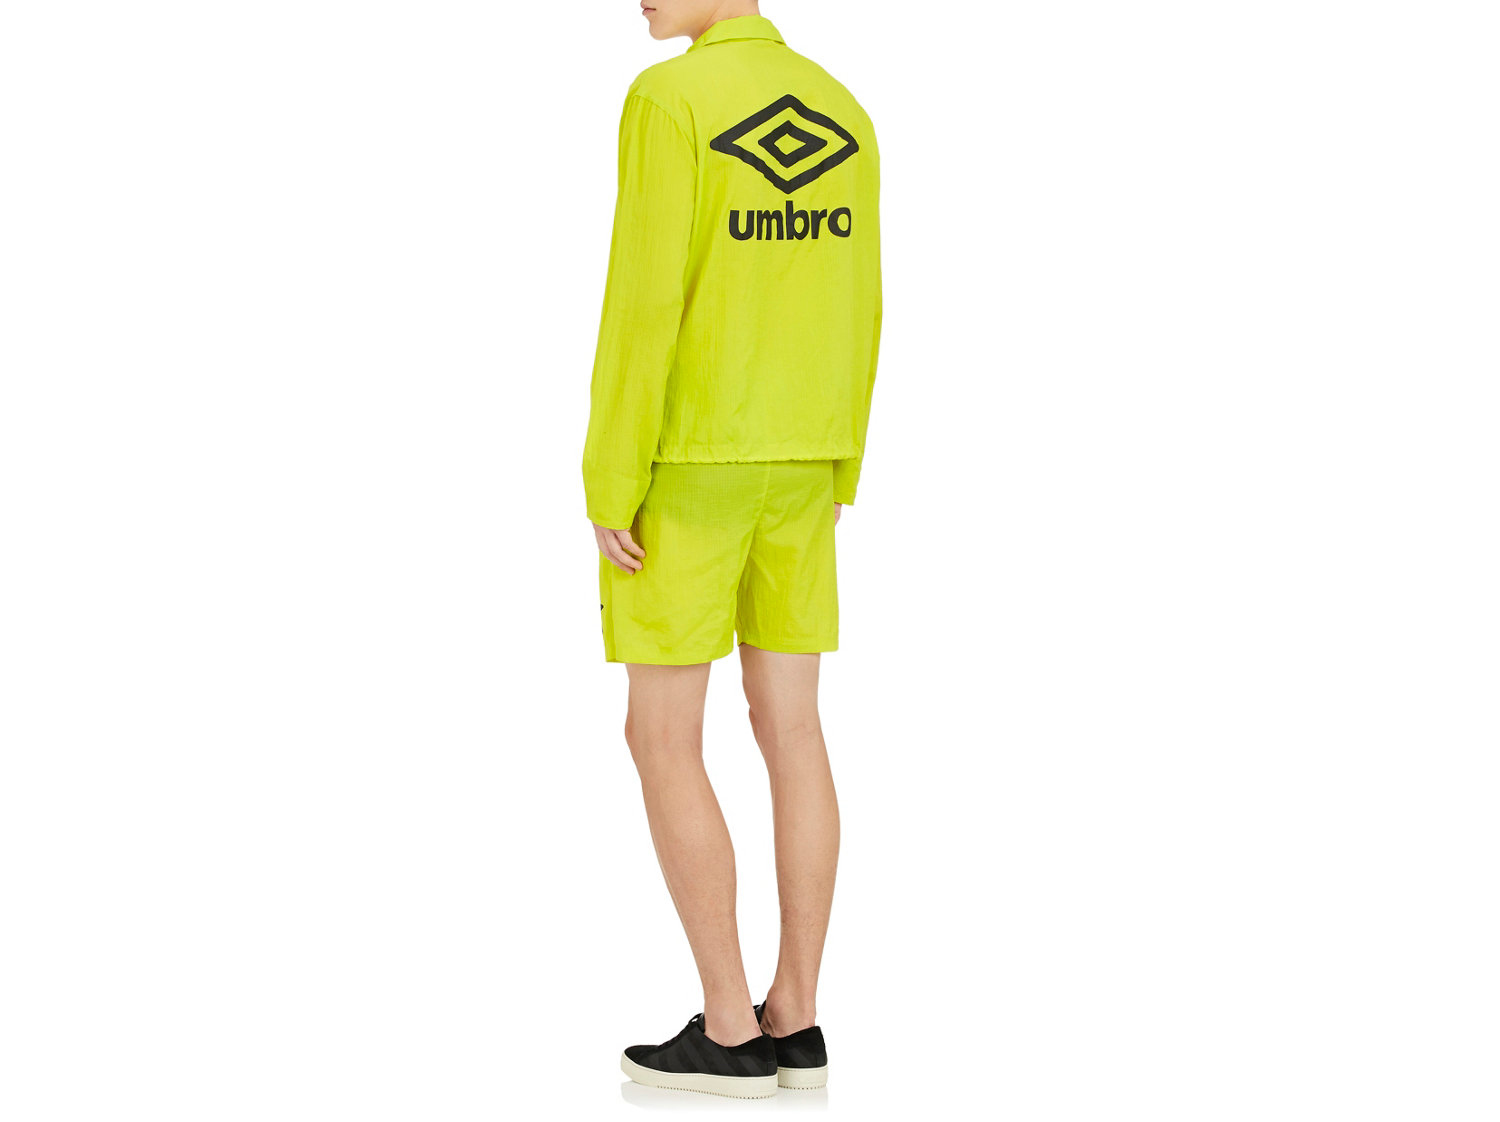 off-white-umbro-5